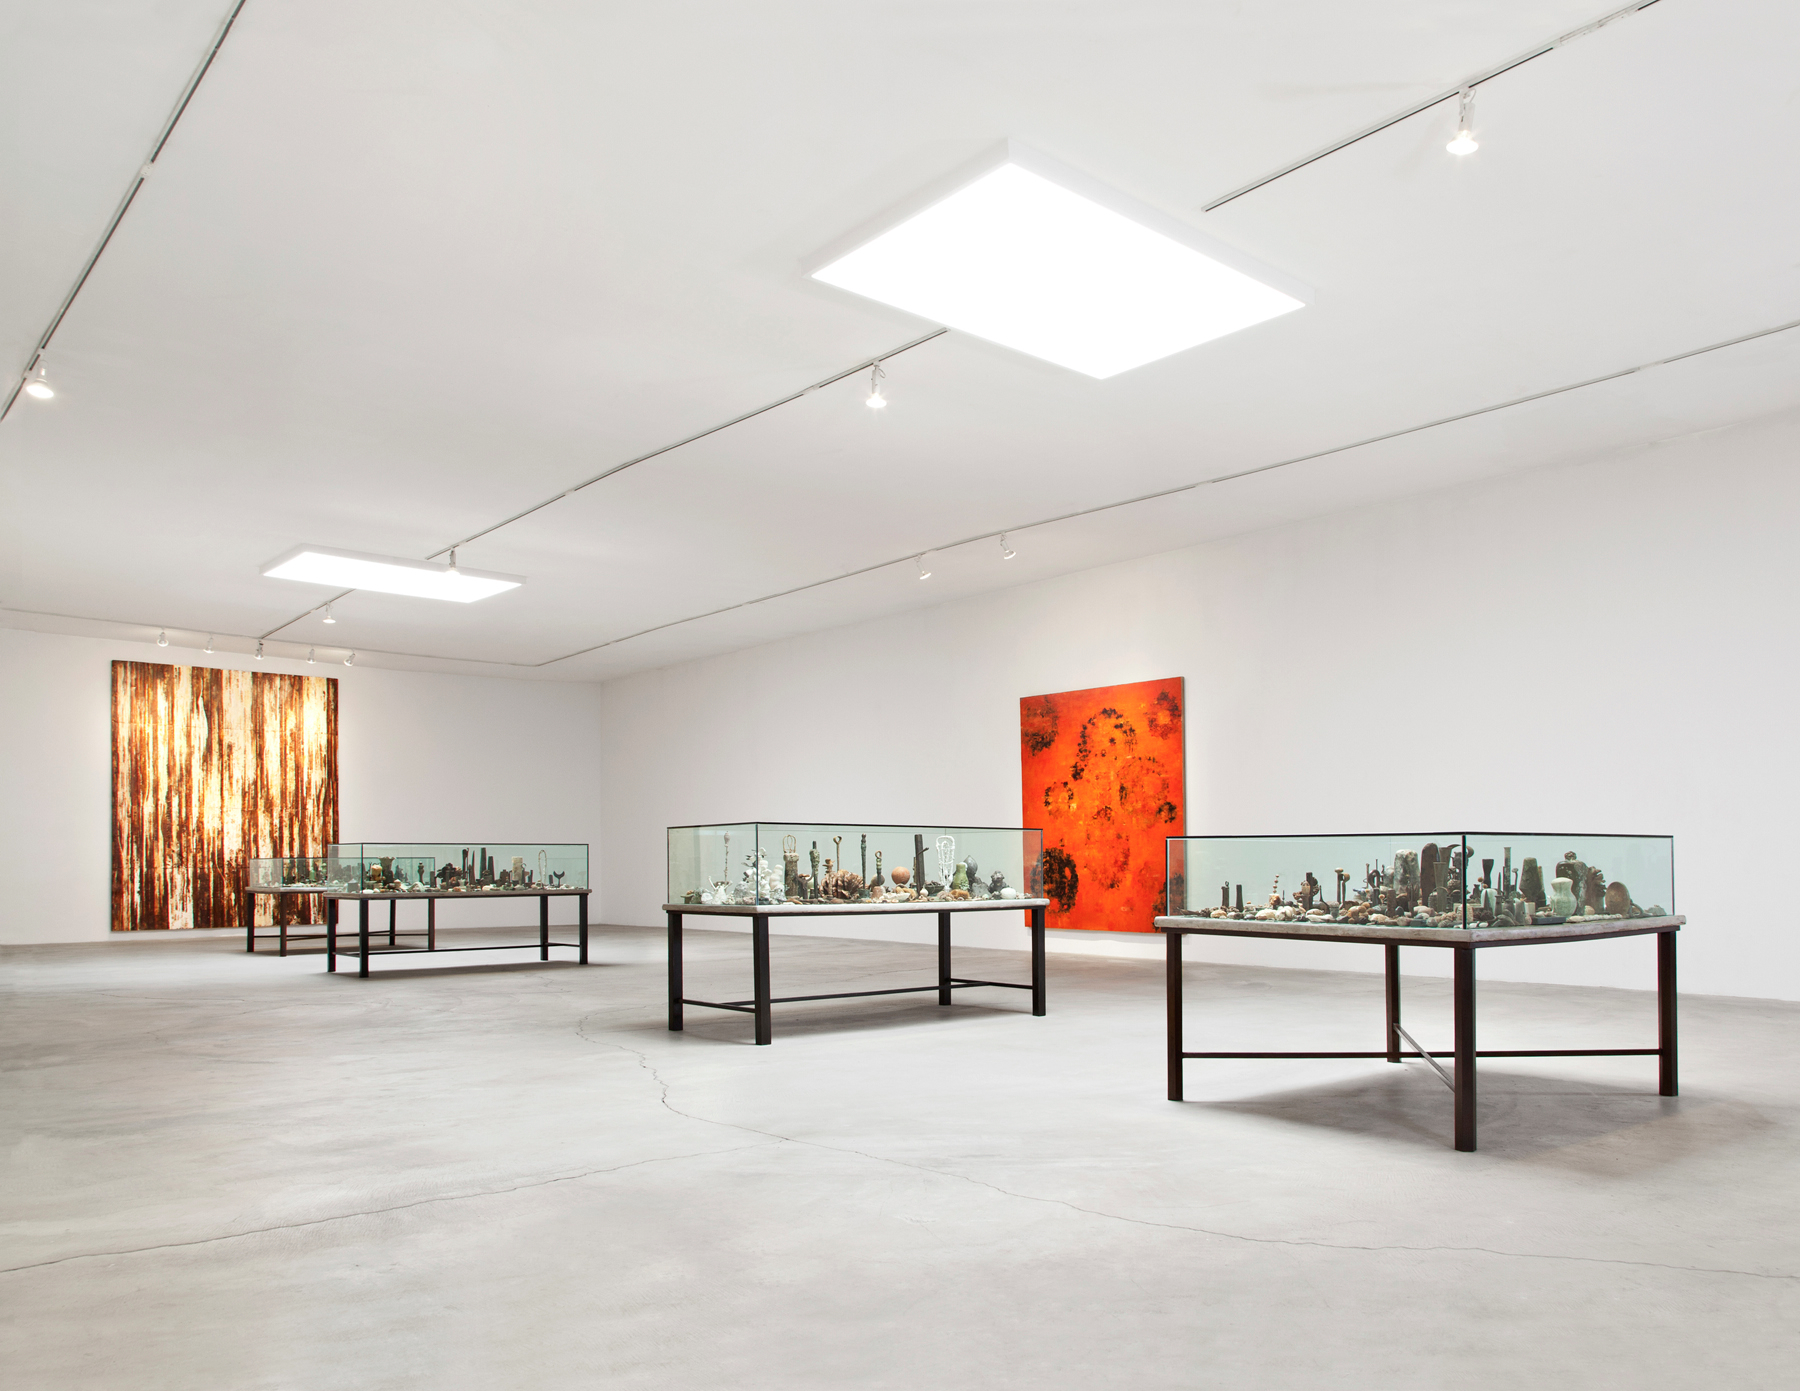 Fieldmarks 1, Table of Contents 1, 111, 1V, 11 and Burn Cycle. Installation View. Courtesy Ace Gallery Los Angeles.